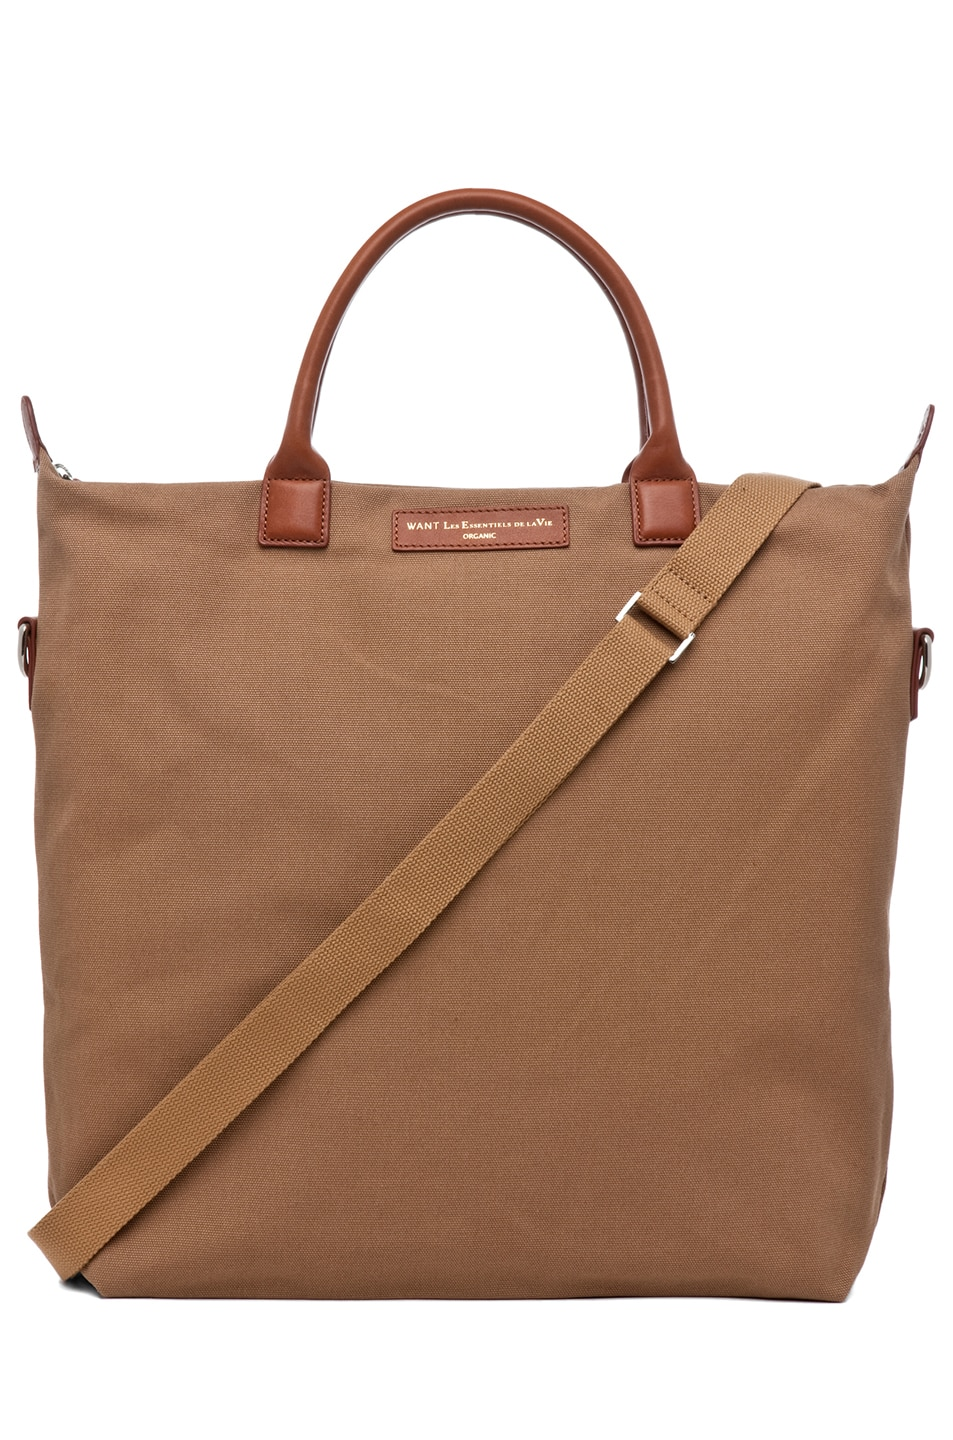 Image 1 of Want Les Essentiels De La Vie O'Hare Shopper Tote in Beige & Cognac